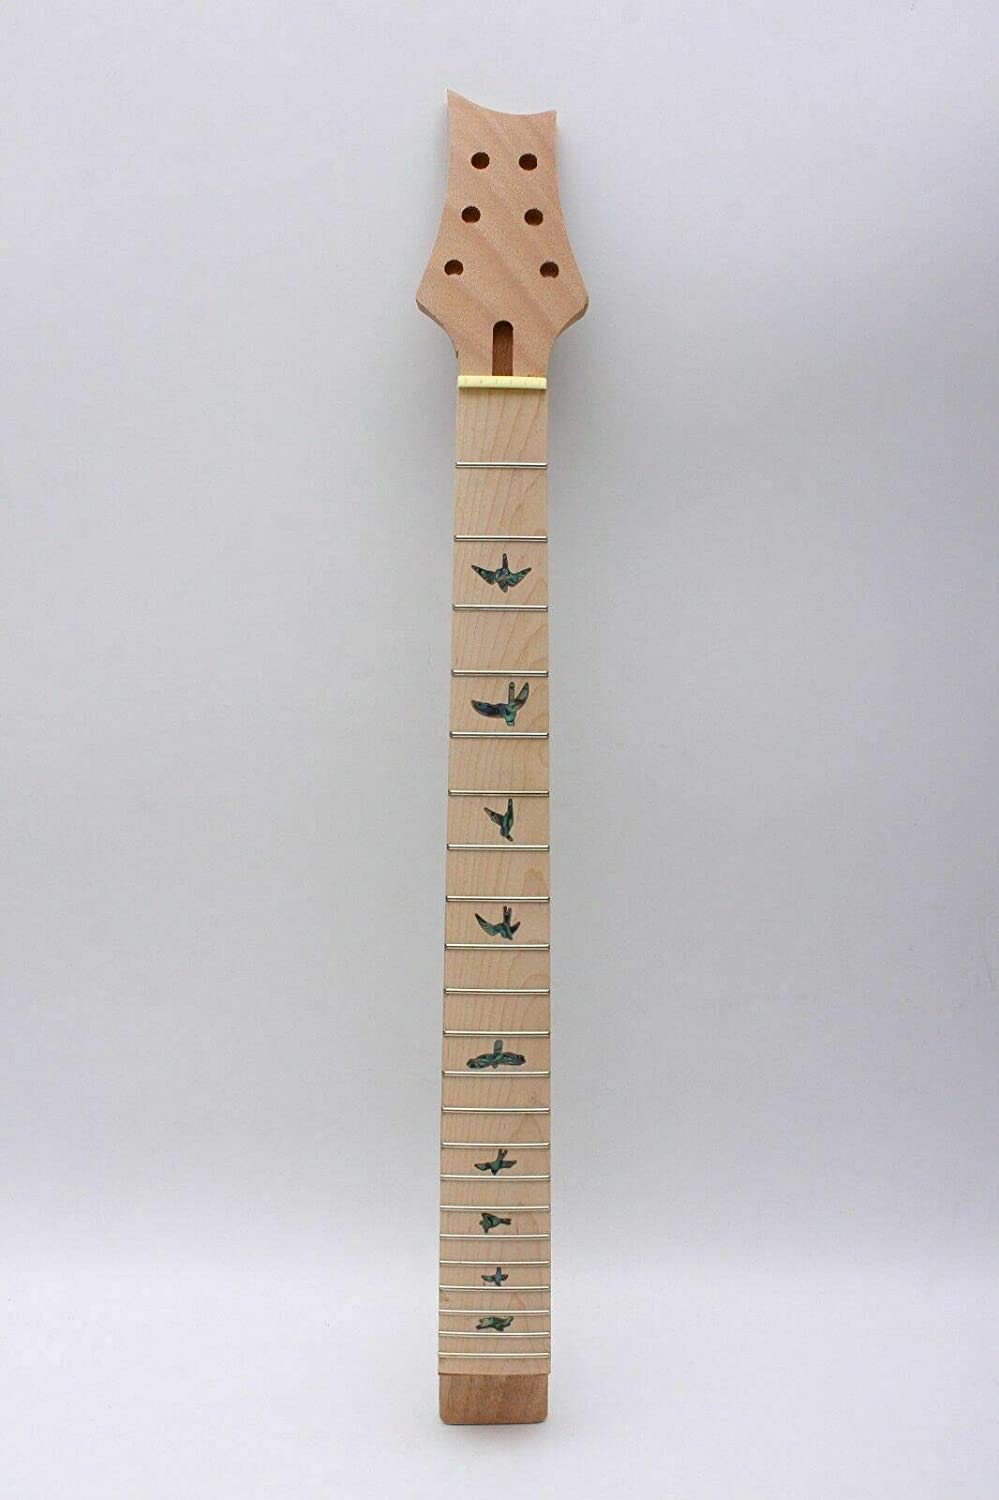 24.75inch Yinfente New Guitar Neck 22 fret Guitar Replacement Unfinished 24.75inch Maple Fretboard colorful Bird Inlay 24.75